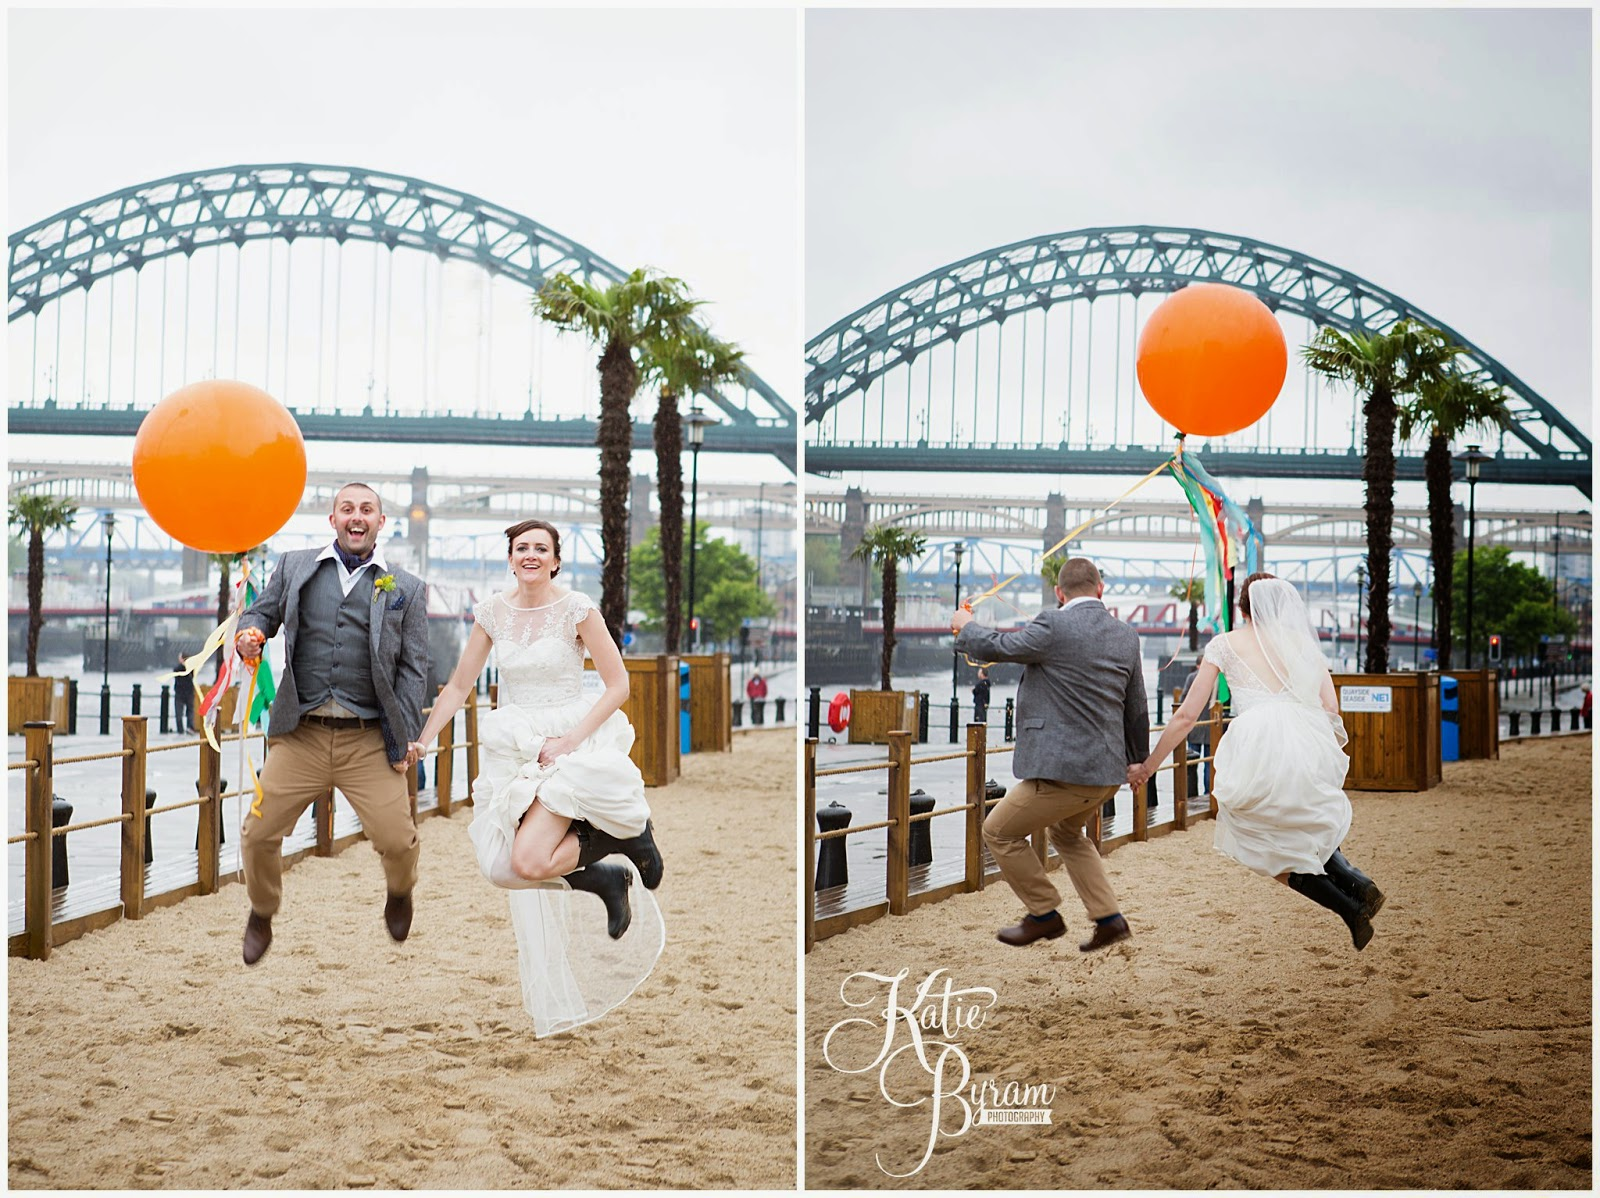 giant balloons, summerhill bowling green, quayside wedding, newcastle wedding, no ordinary florist, vintage wedding, diy wedding, katie byram photography